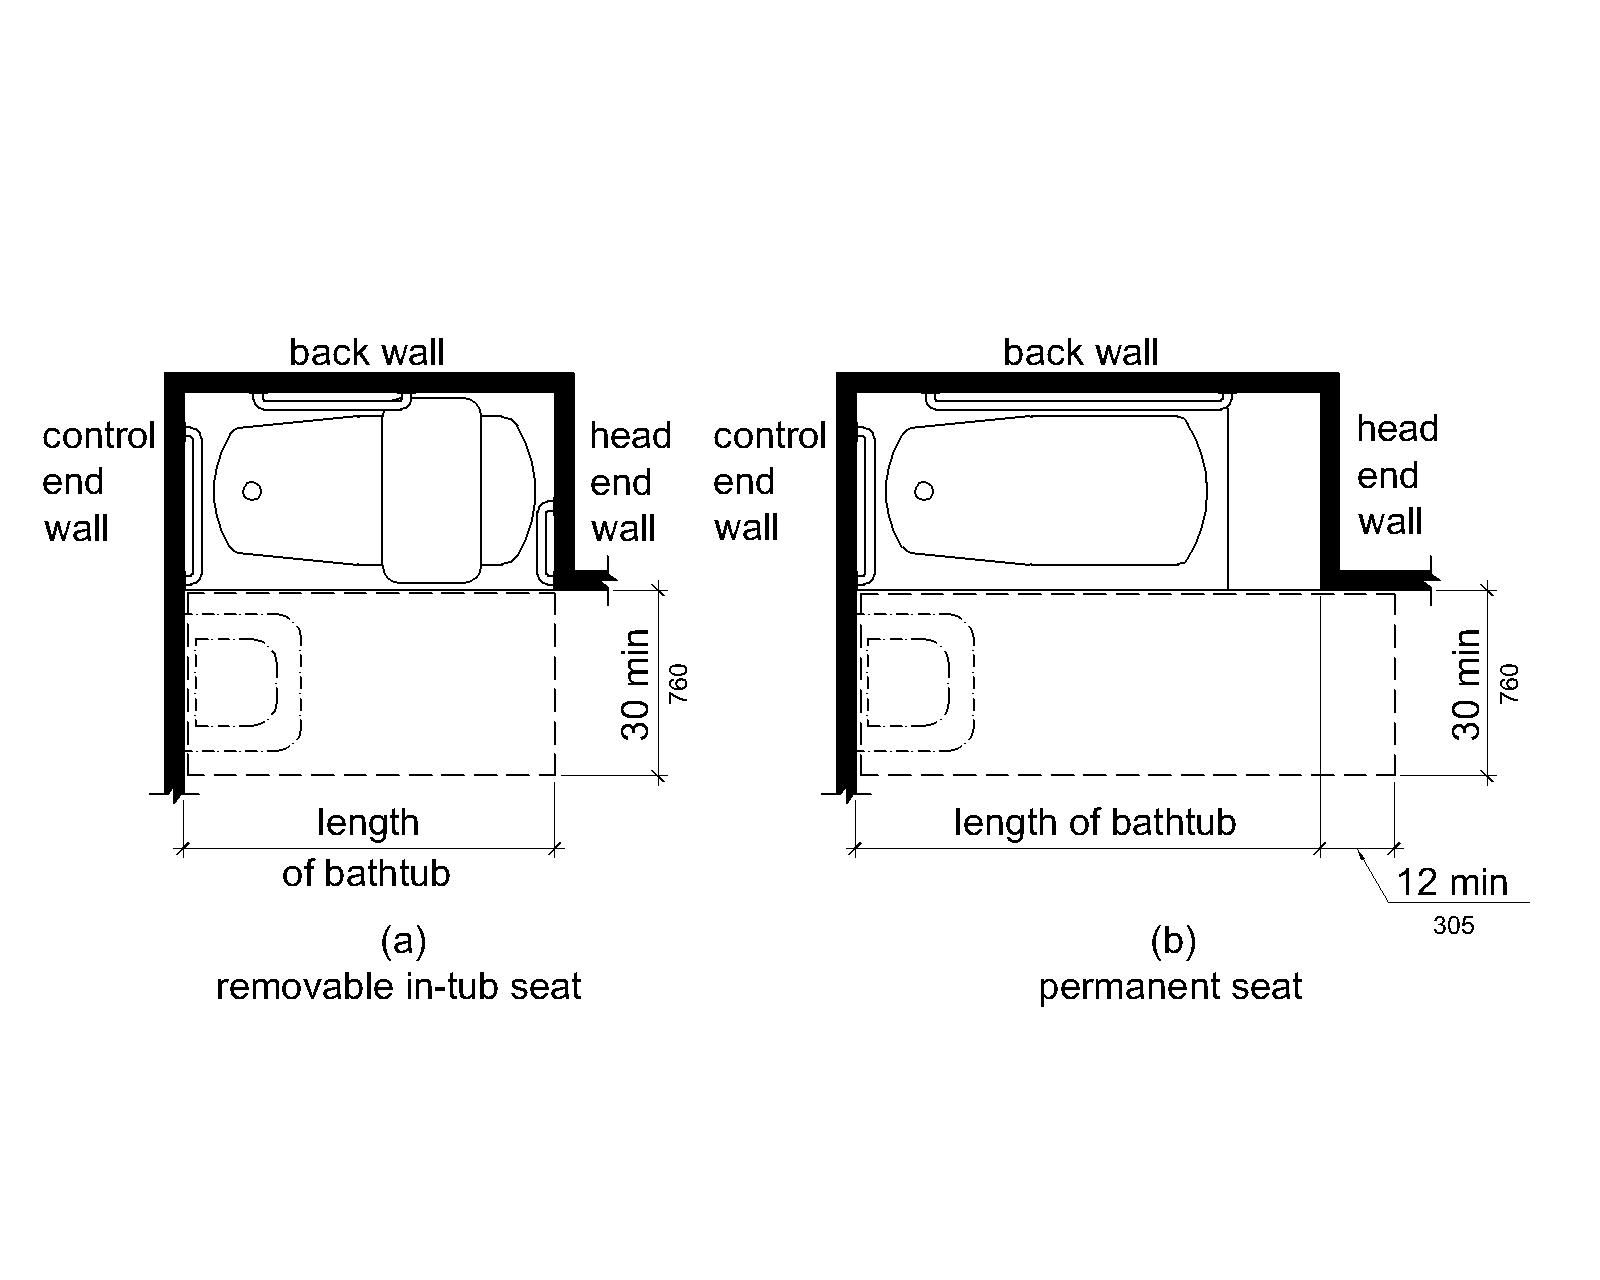 Figure (a) shows a bathtub with a removable in-tub seat. The bathtub has clearance in front 30 inches (760 mm) wide minimum that extends the length of the tub. Figure (b) shows a bathtub with a permanent seat at the head end (the end opposite the controls). The tub has clearance in front 30 inches (760 mm) wide minimum that extends the length of the tub plus 12 inches (305 mm) minimum beyond the seat. Both figures show that a lavatory can be located at the foot end of the tub clearance.